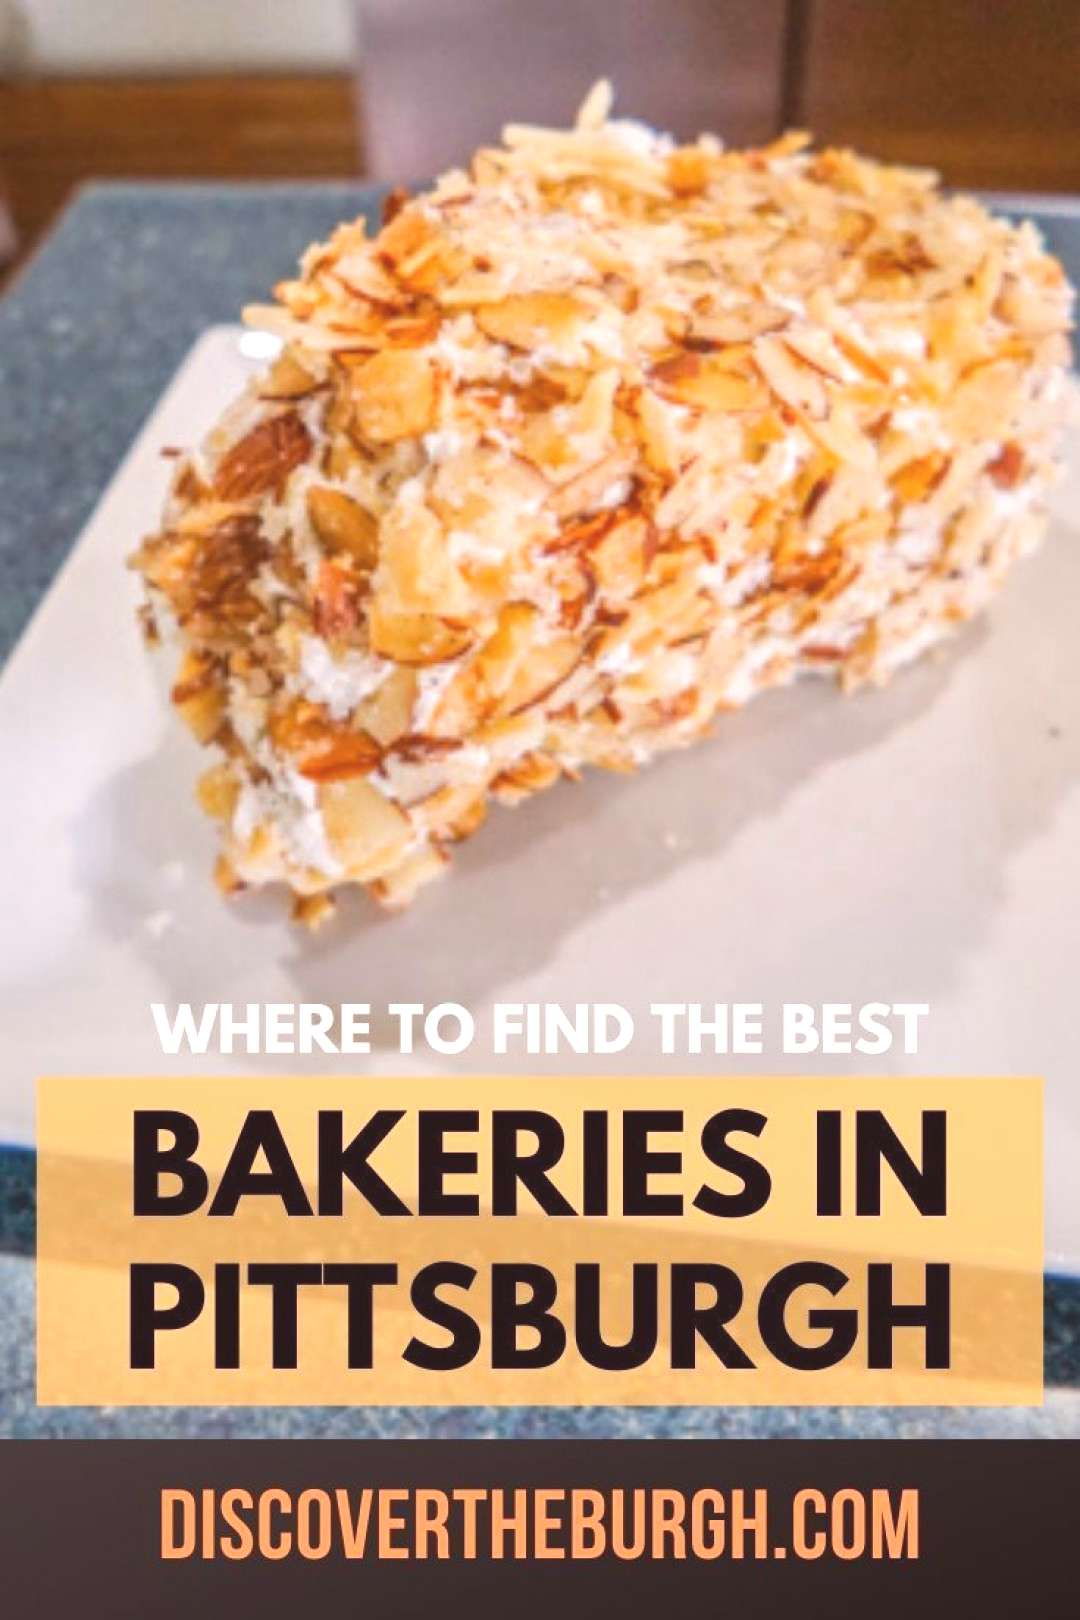 Find a Favorite Bakery in Pittsburgh Pittsburgh is home to some pretty amazing bakeries, from those